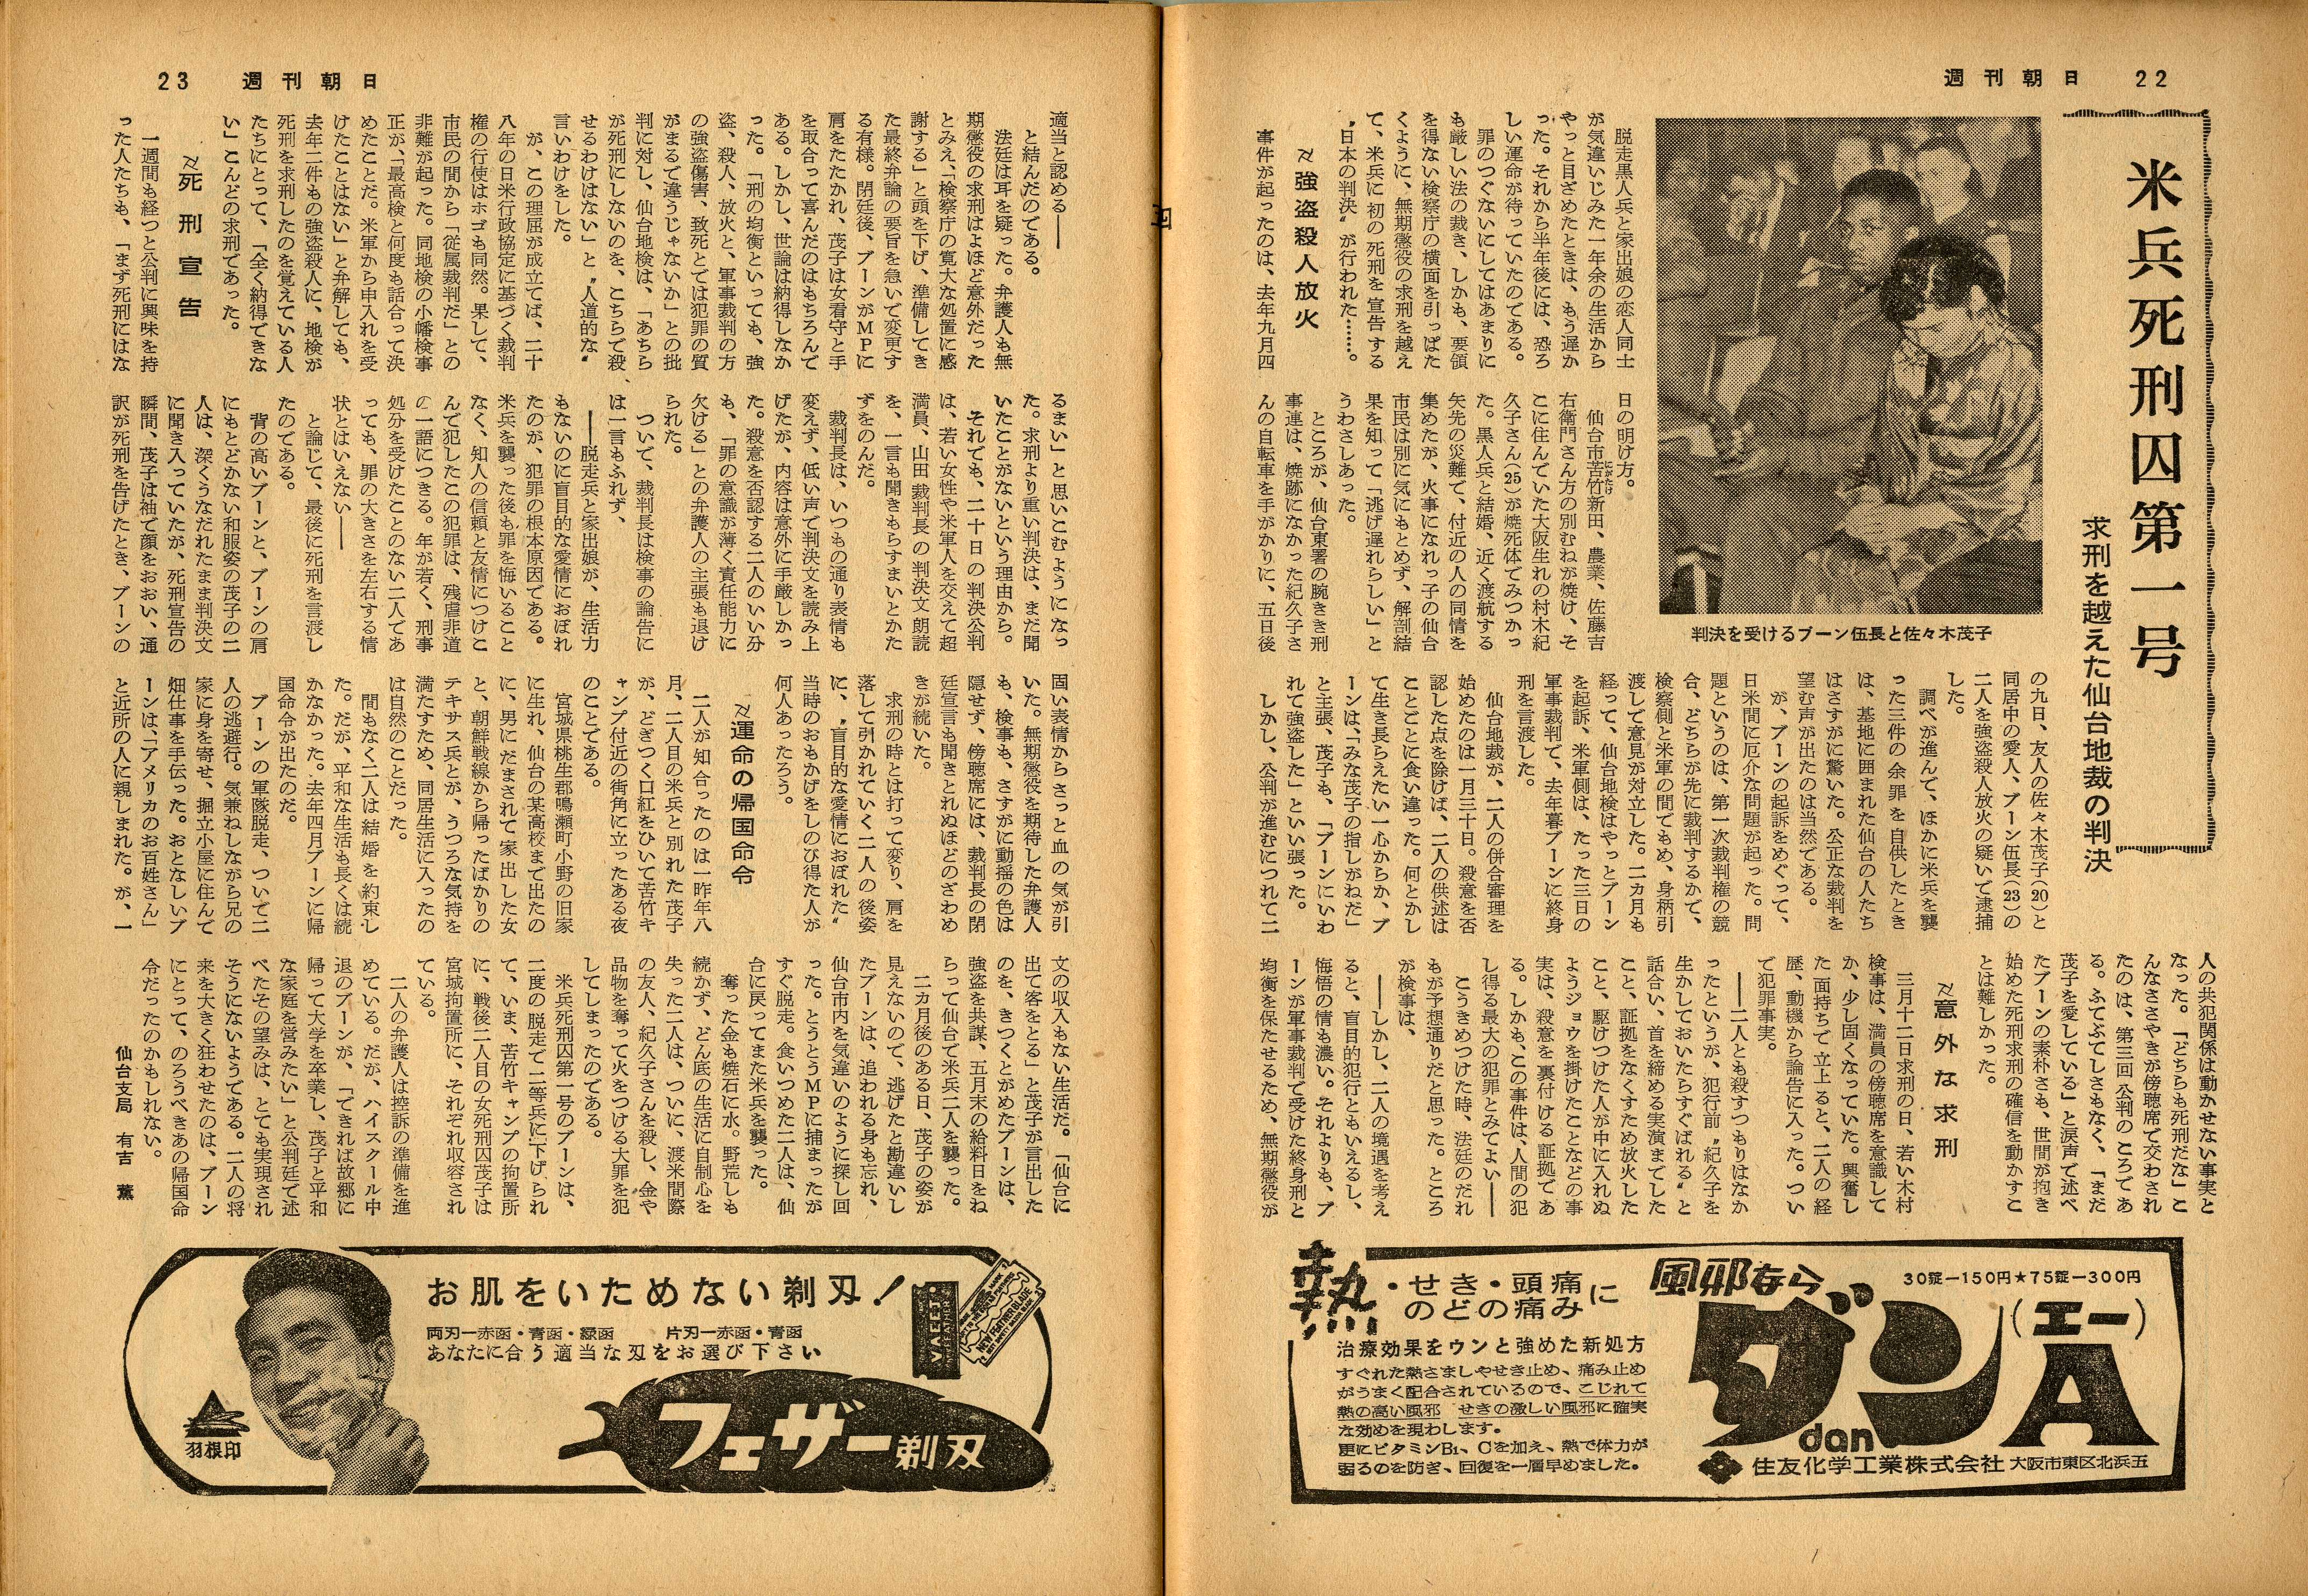 Covers pages 1 and 88 Boone Shukan Asahi